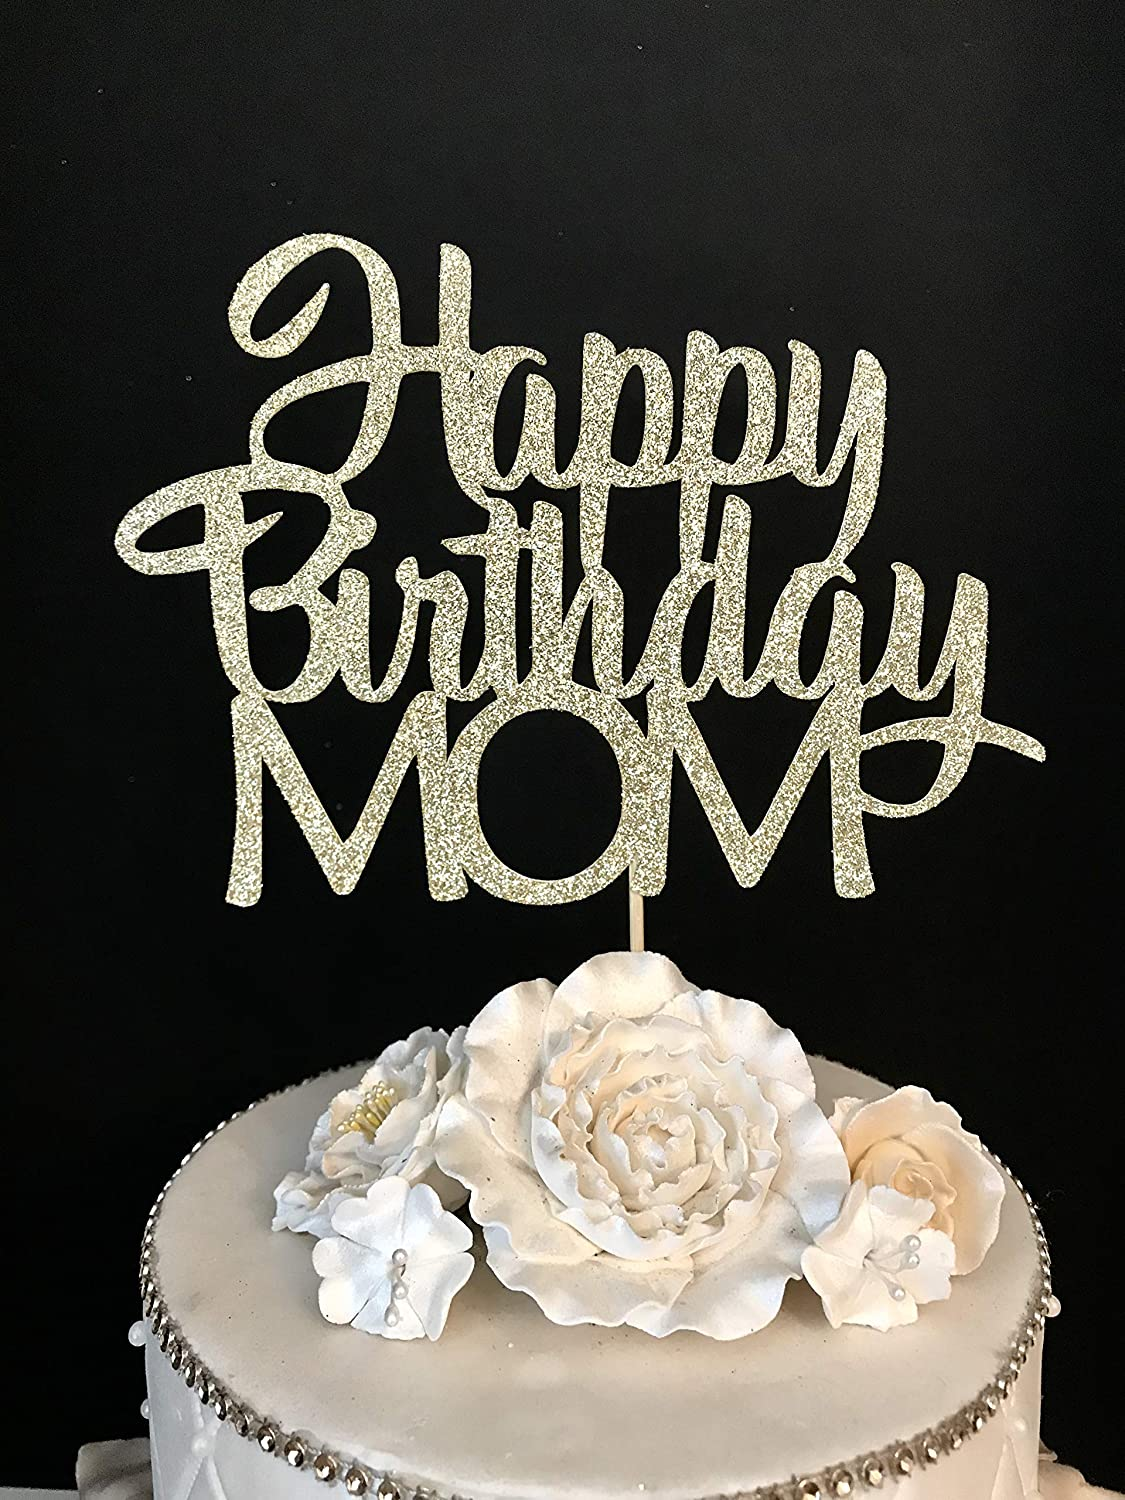 Tremendous Amazon Com Happy Birthday Mom Cake Topper Arts Crafts Sewing Funny Birthday Cards Online Elaedamsfinfo